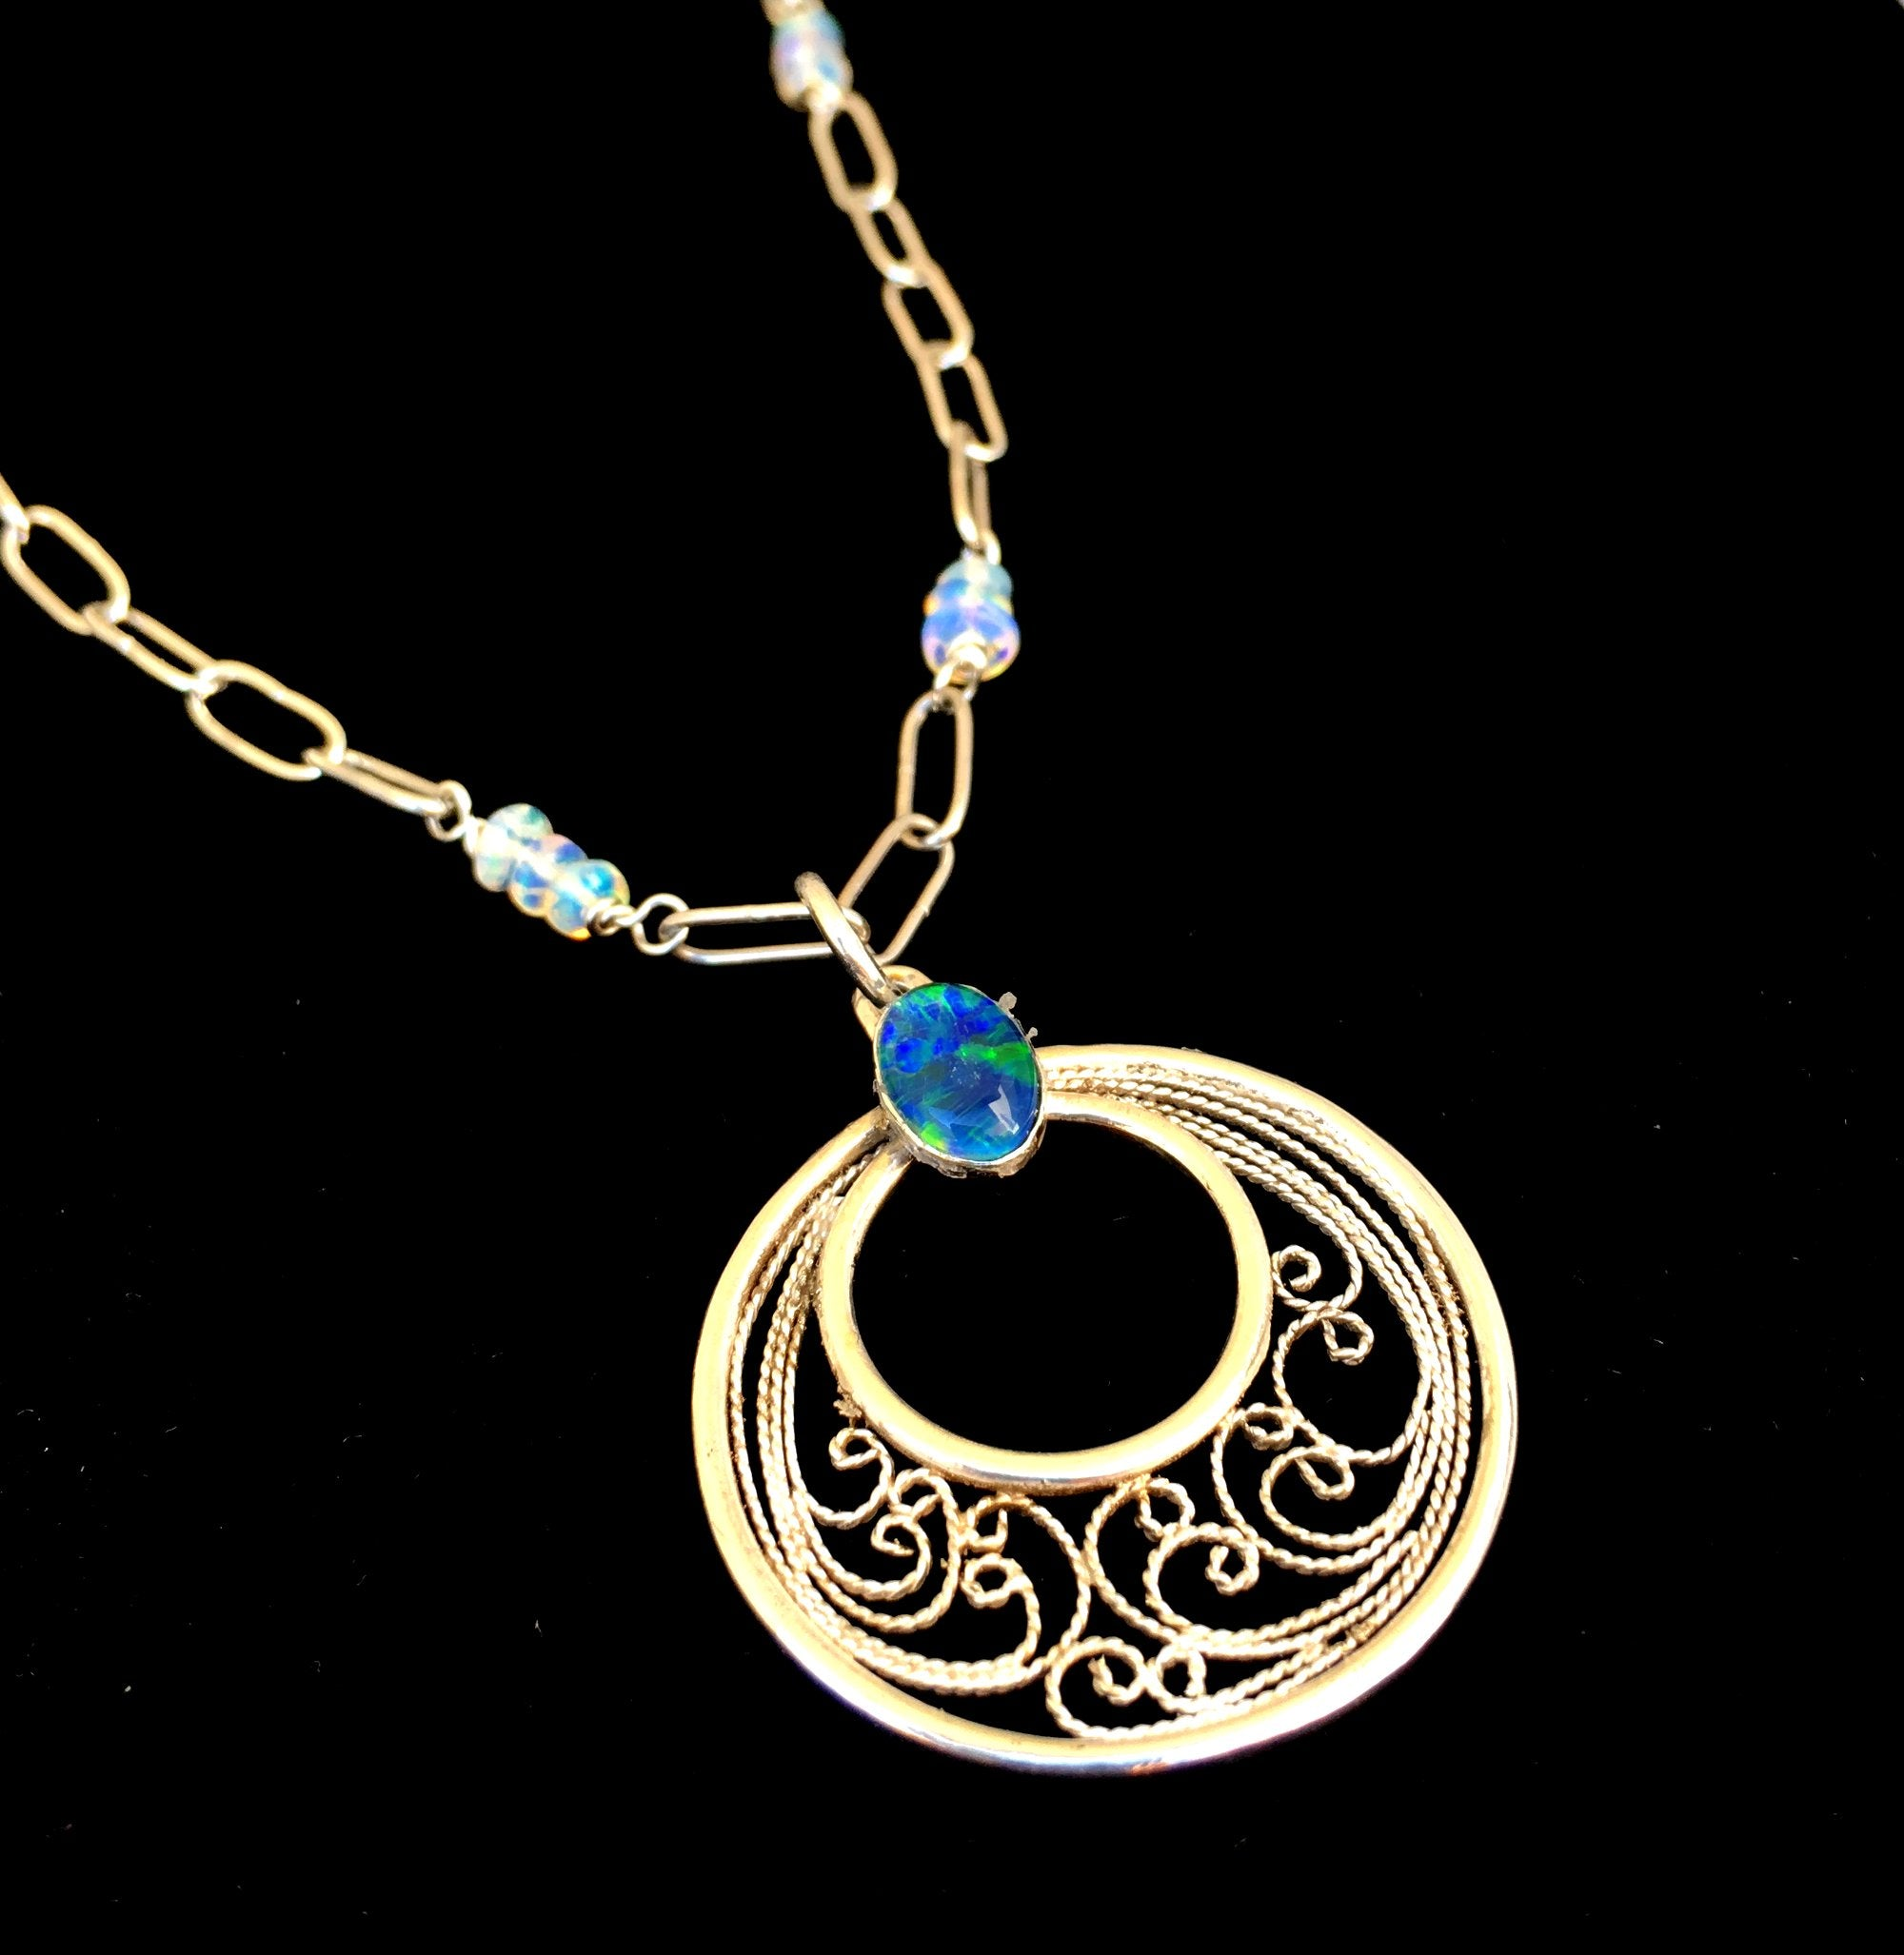 handmade silver filigree pendant necklace with black australian opal